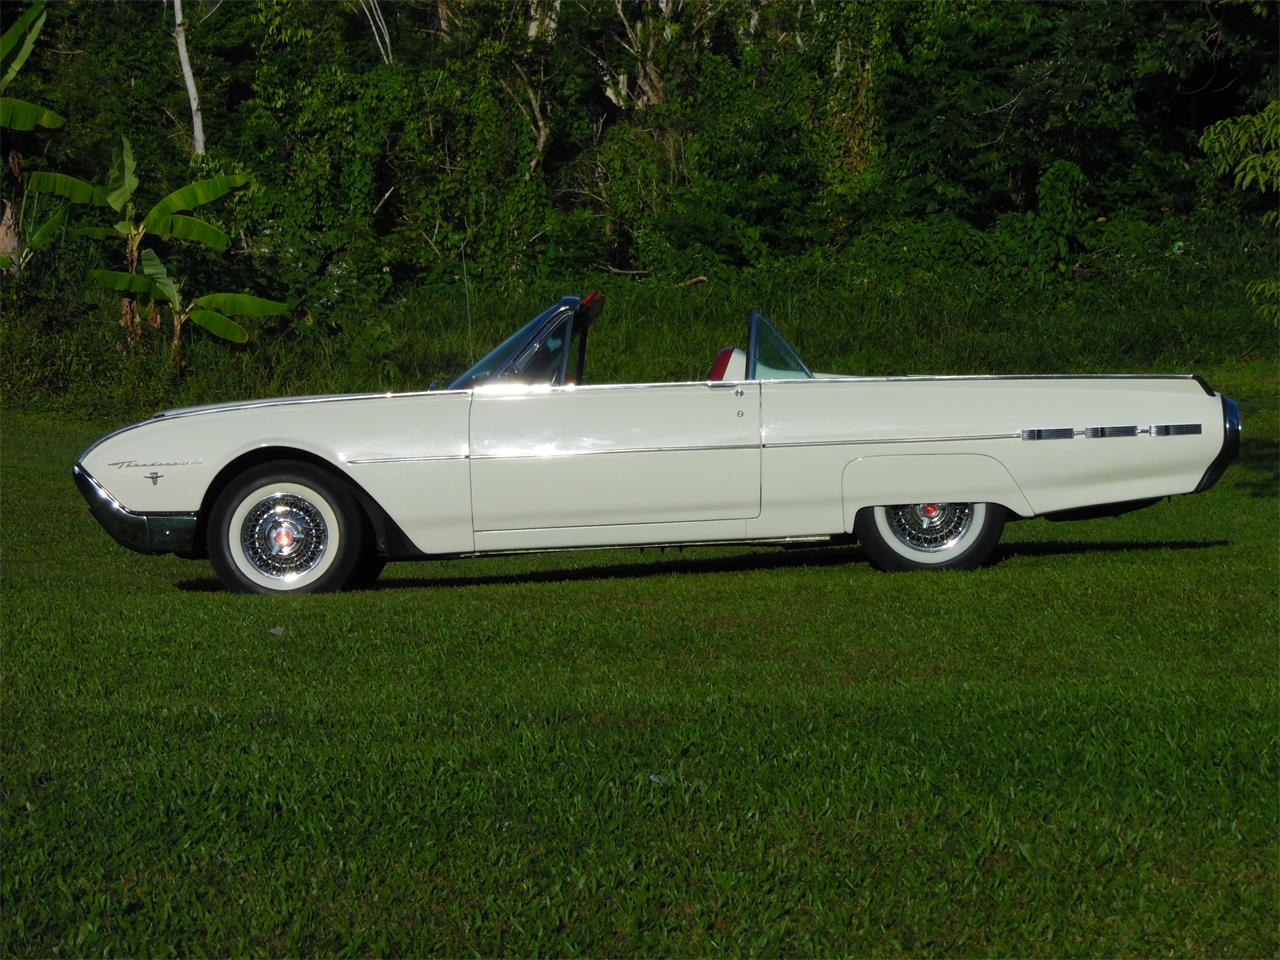 Large Picture of 1962 Thunderbird located in Moca Puerto Rico - $55,000.00 Offered by a Private Seller - MHQG